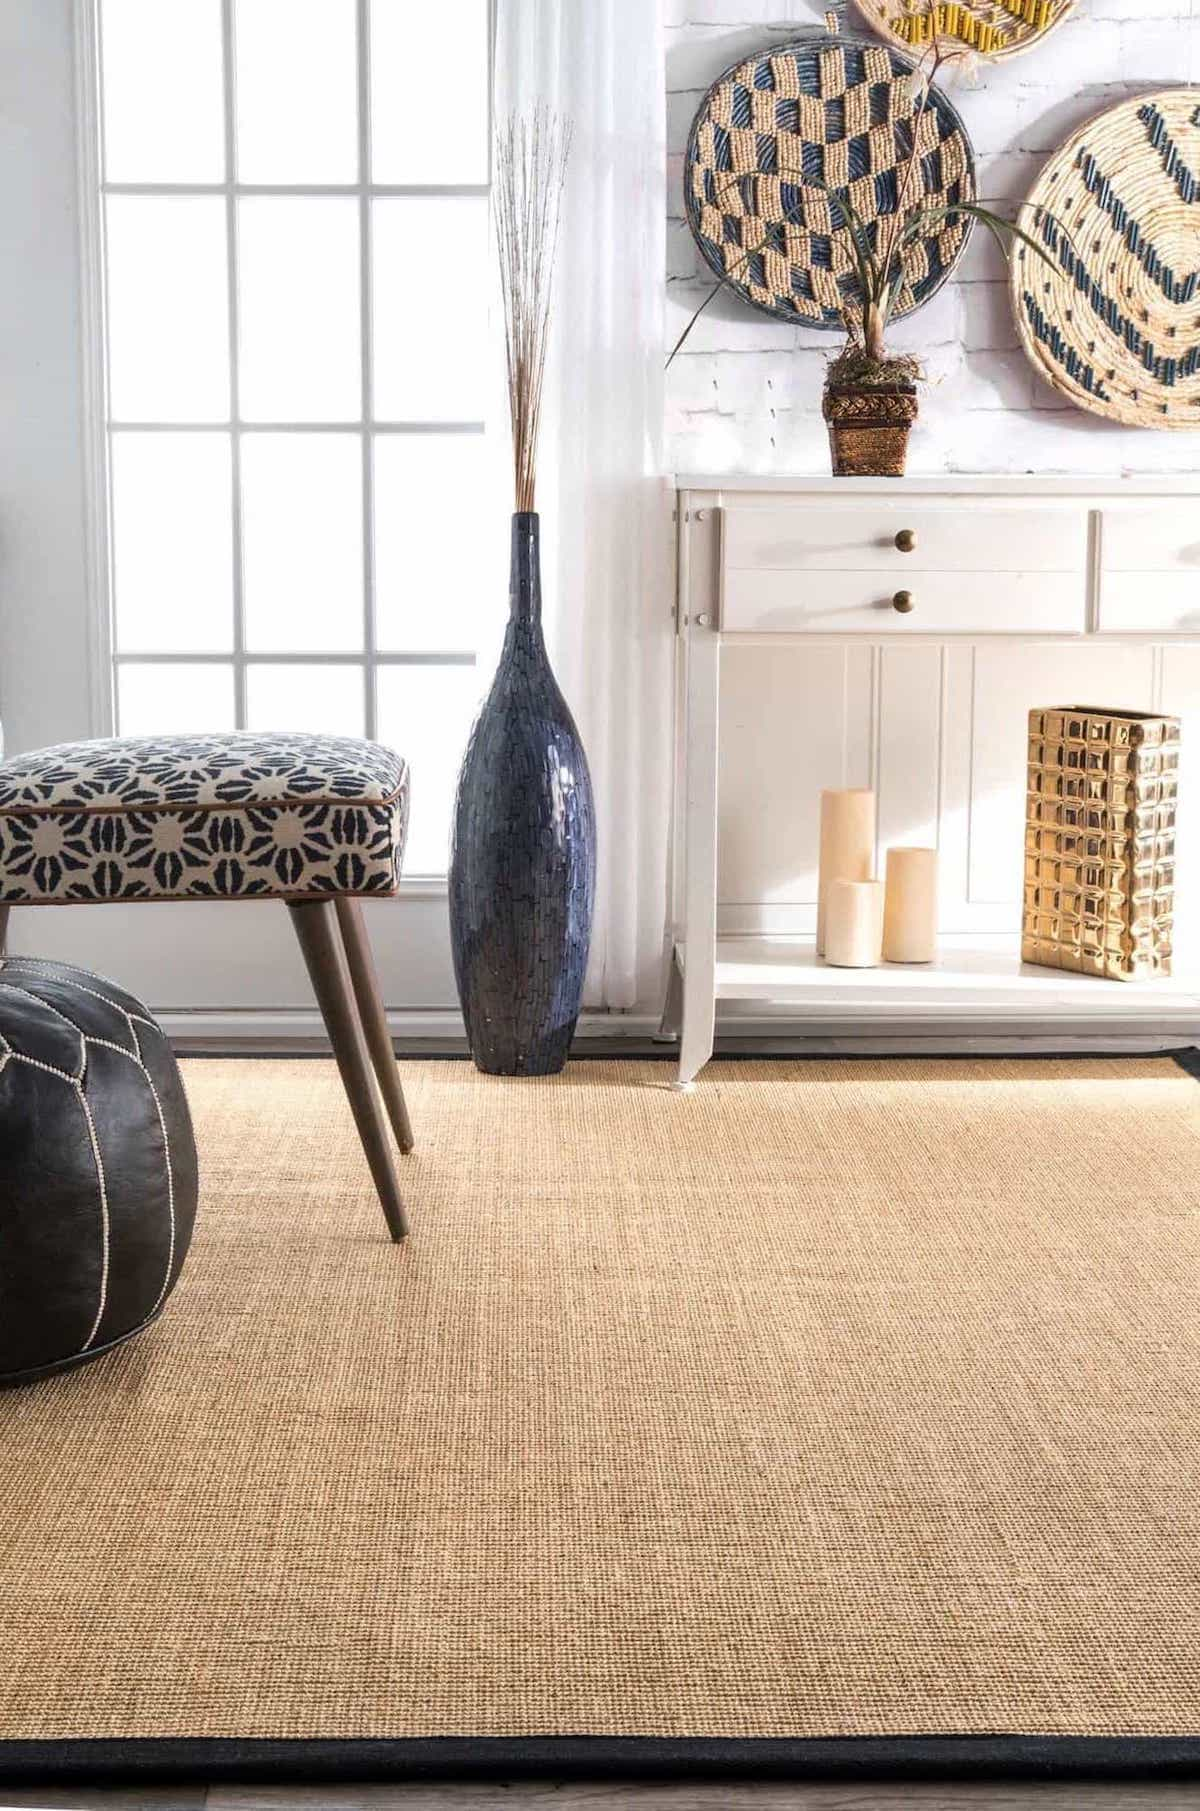 Sisal Rug With Fabric Border For Shabby Chic Living Room Decor With Rug Flooring (Image 13 of 15)